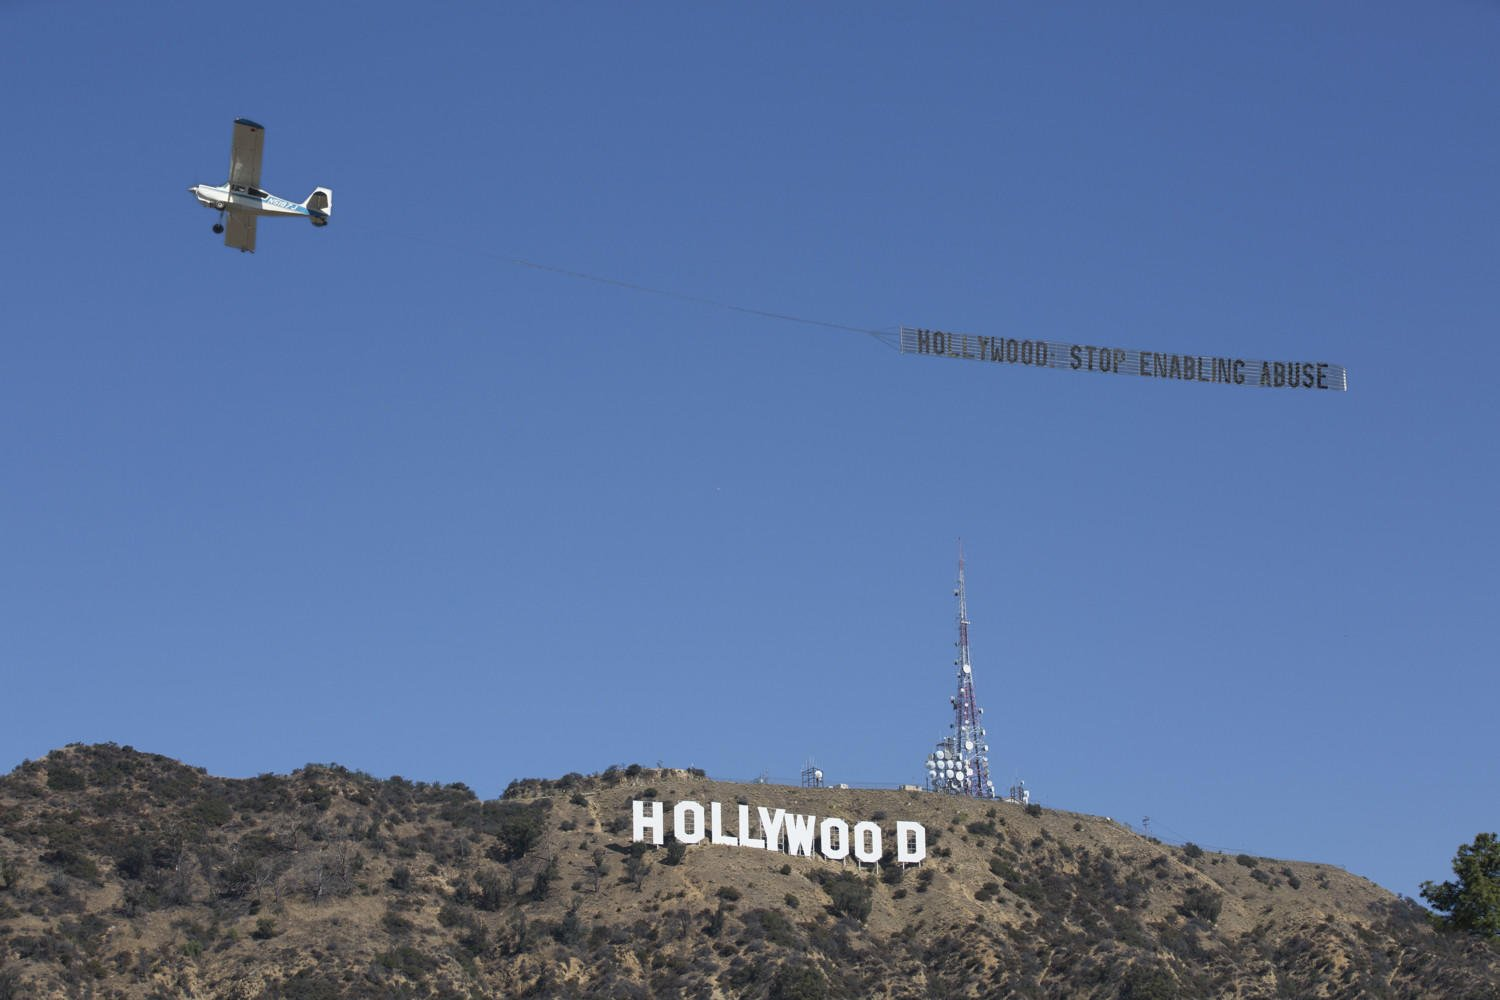 A banner seen over Los Angeles demands Hollywood to 'stop enabling abuse' https://t.co/UmSC1sg0Np https://t.co/Pz5YvoUrqX